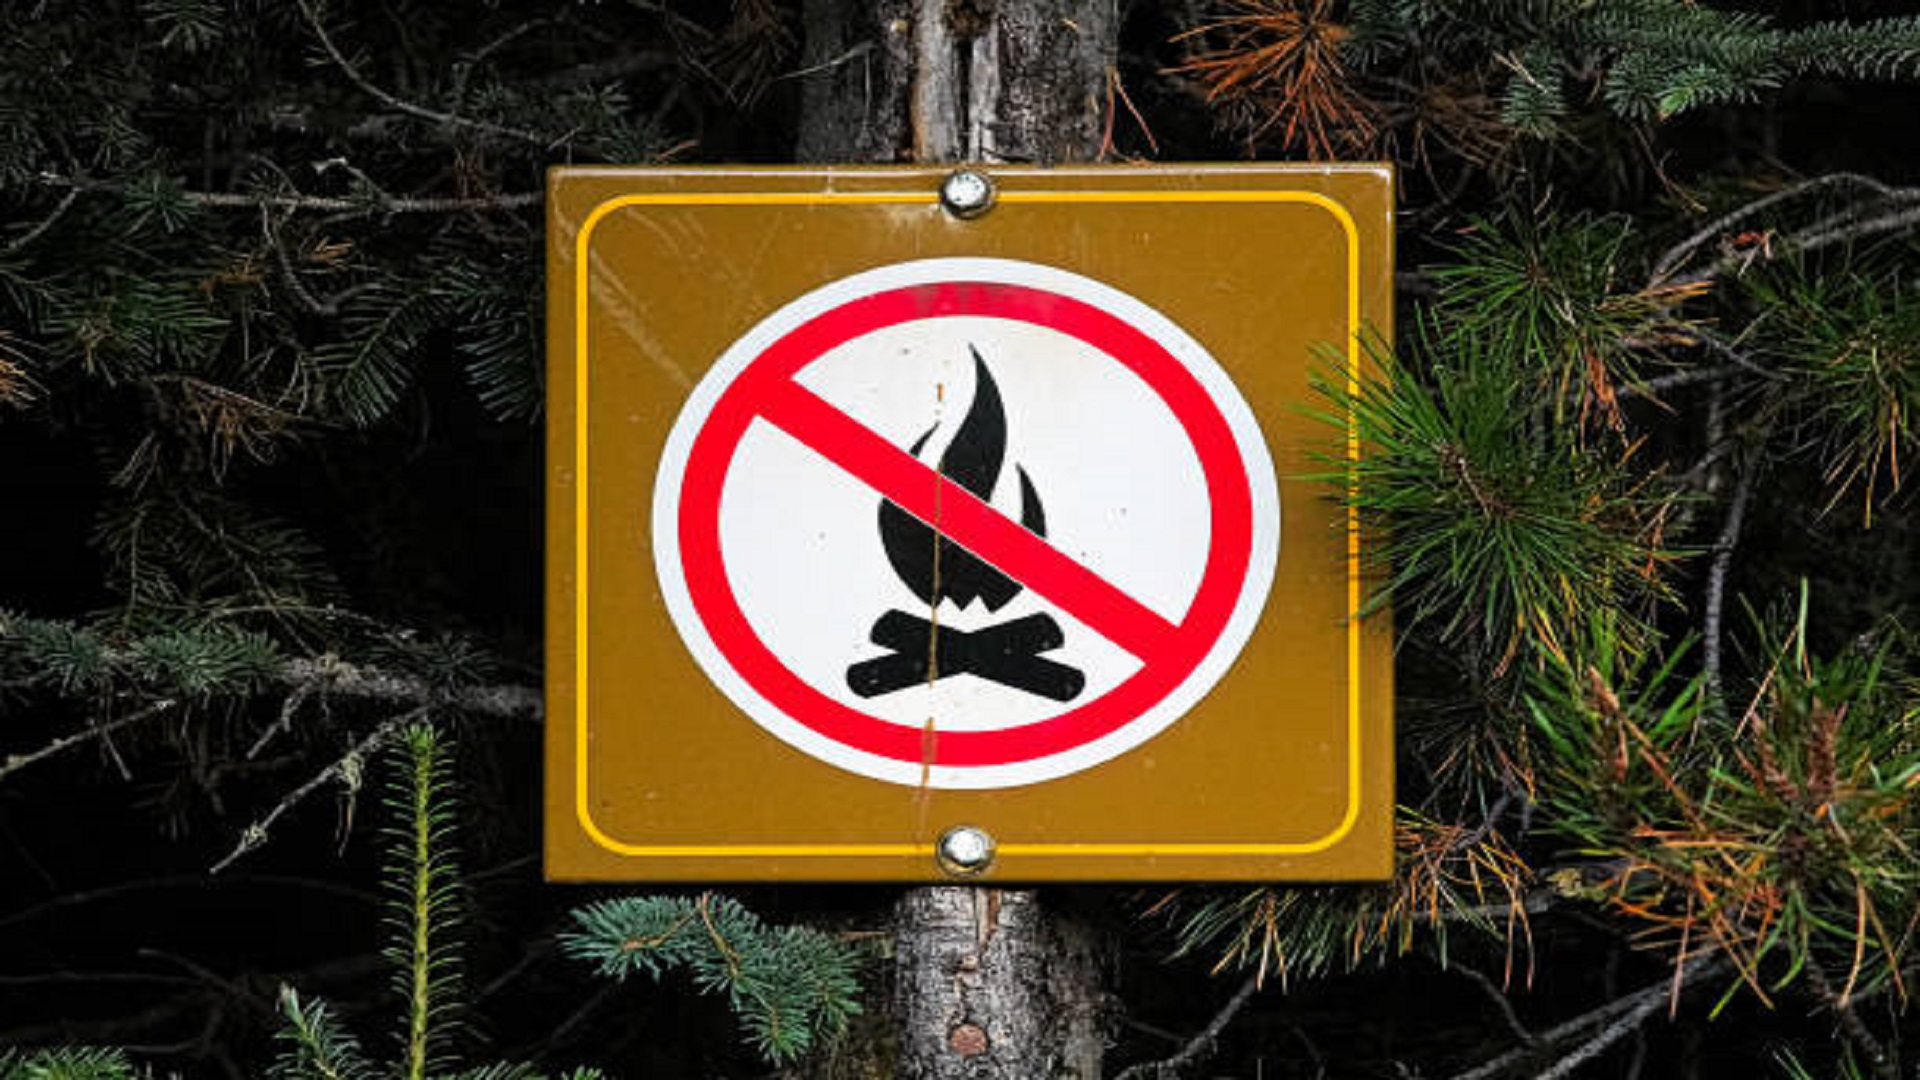 Fire/Burning Ban Effective July 16/2021